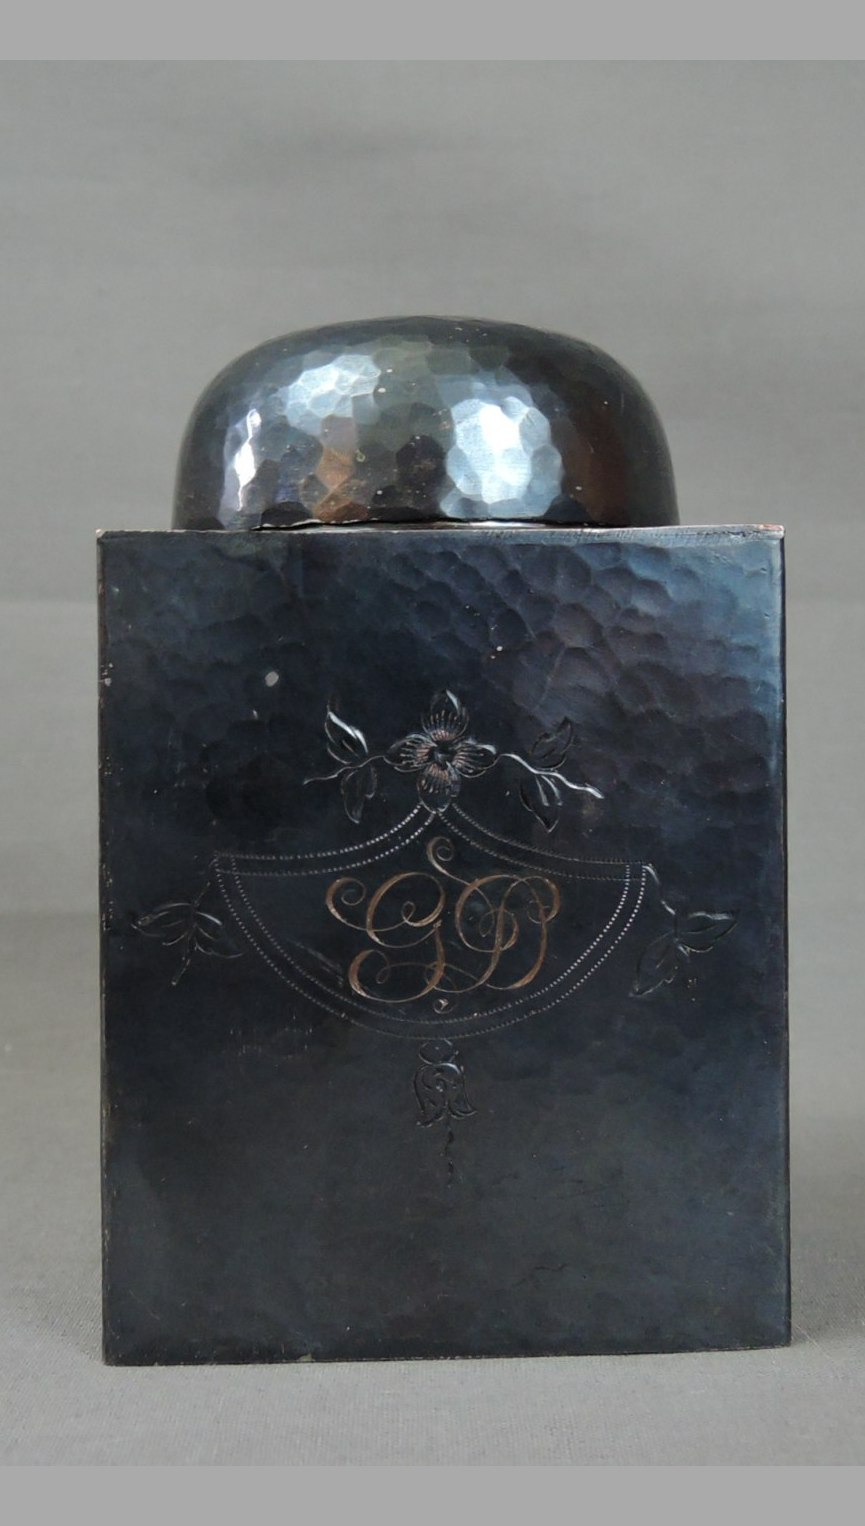 Vintage Cremation Urn, 1920s Etched Initials, Hammered Metal, 5 inches tall